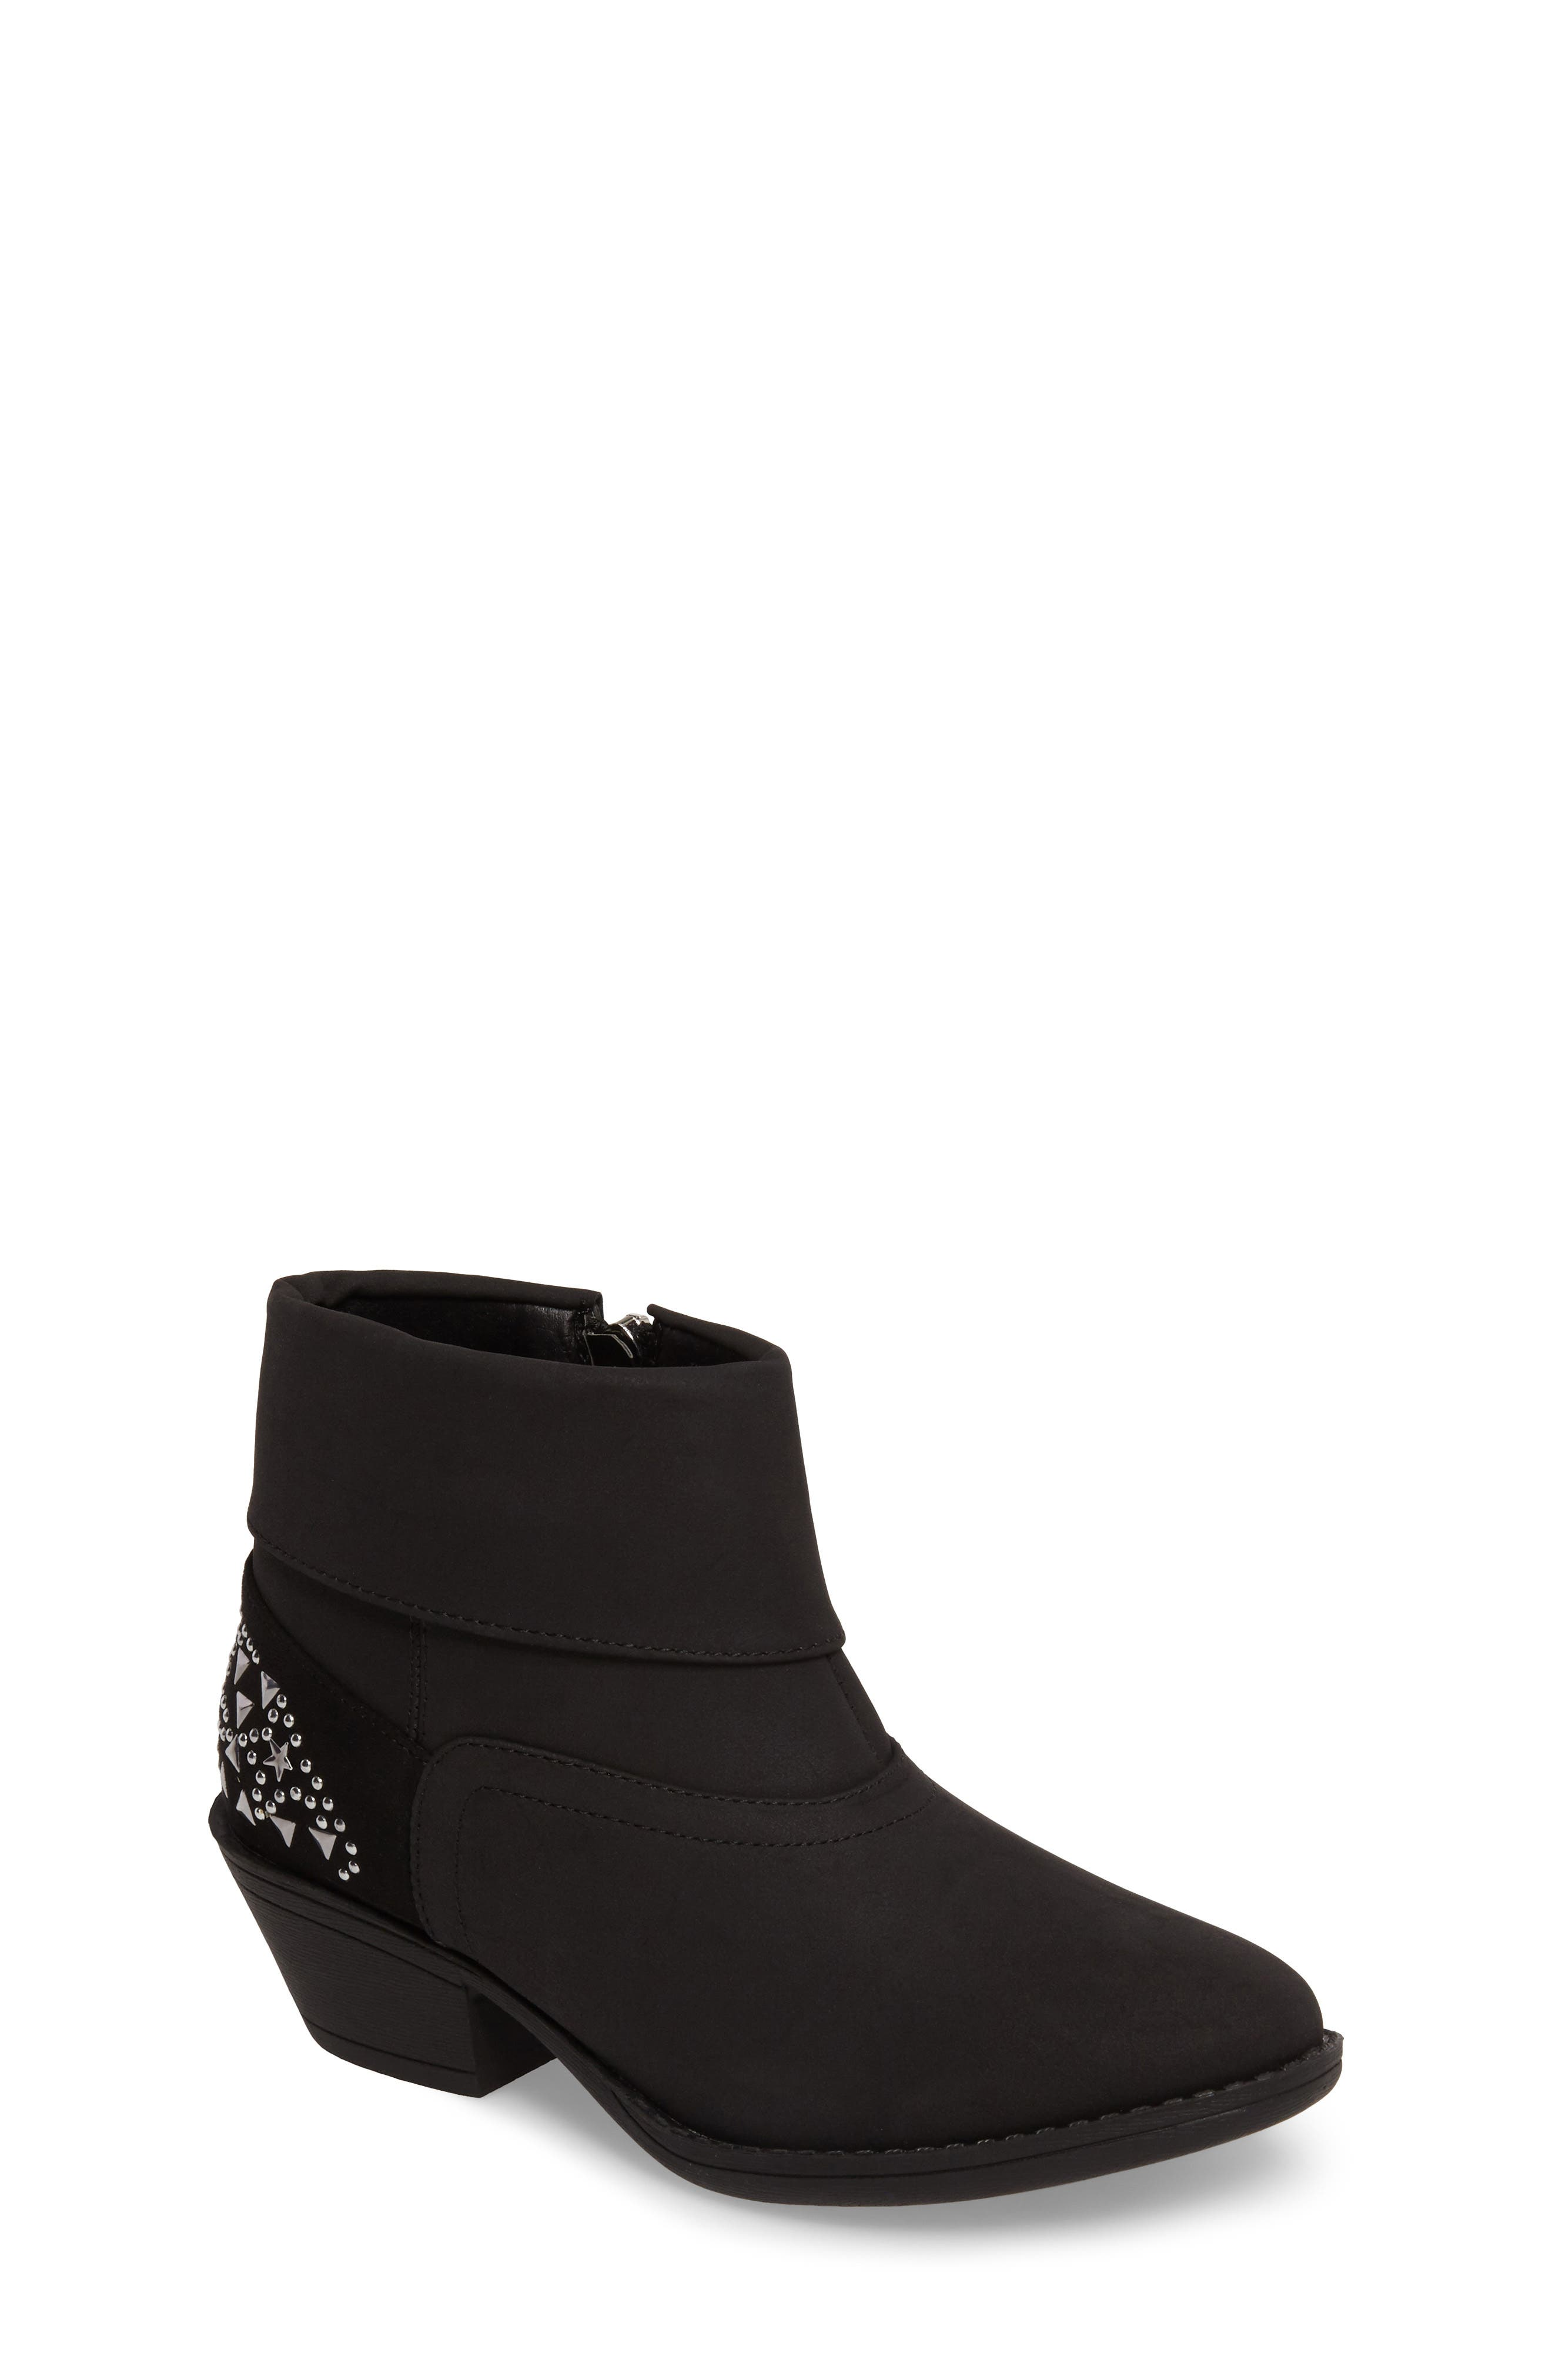 Taylor Star Bootie,                             Main thumbnail 1, color,                             001